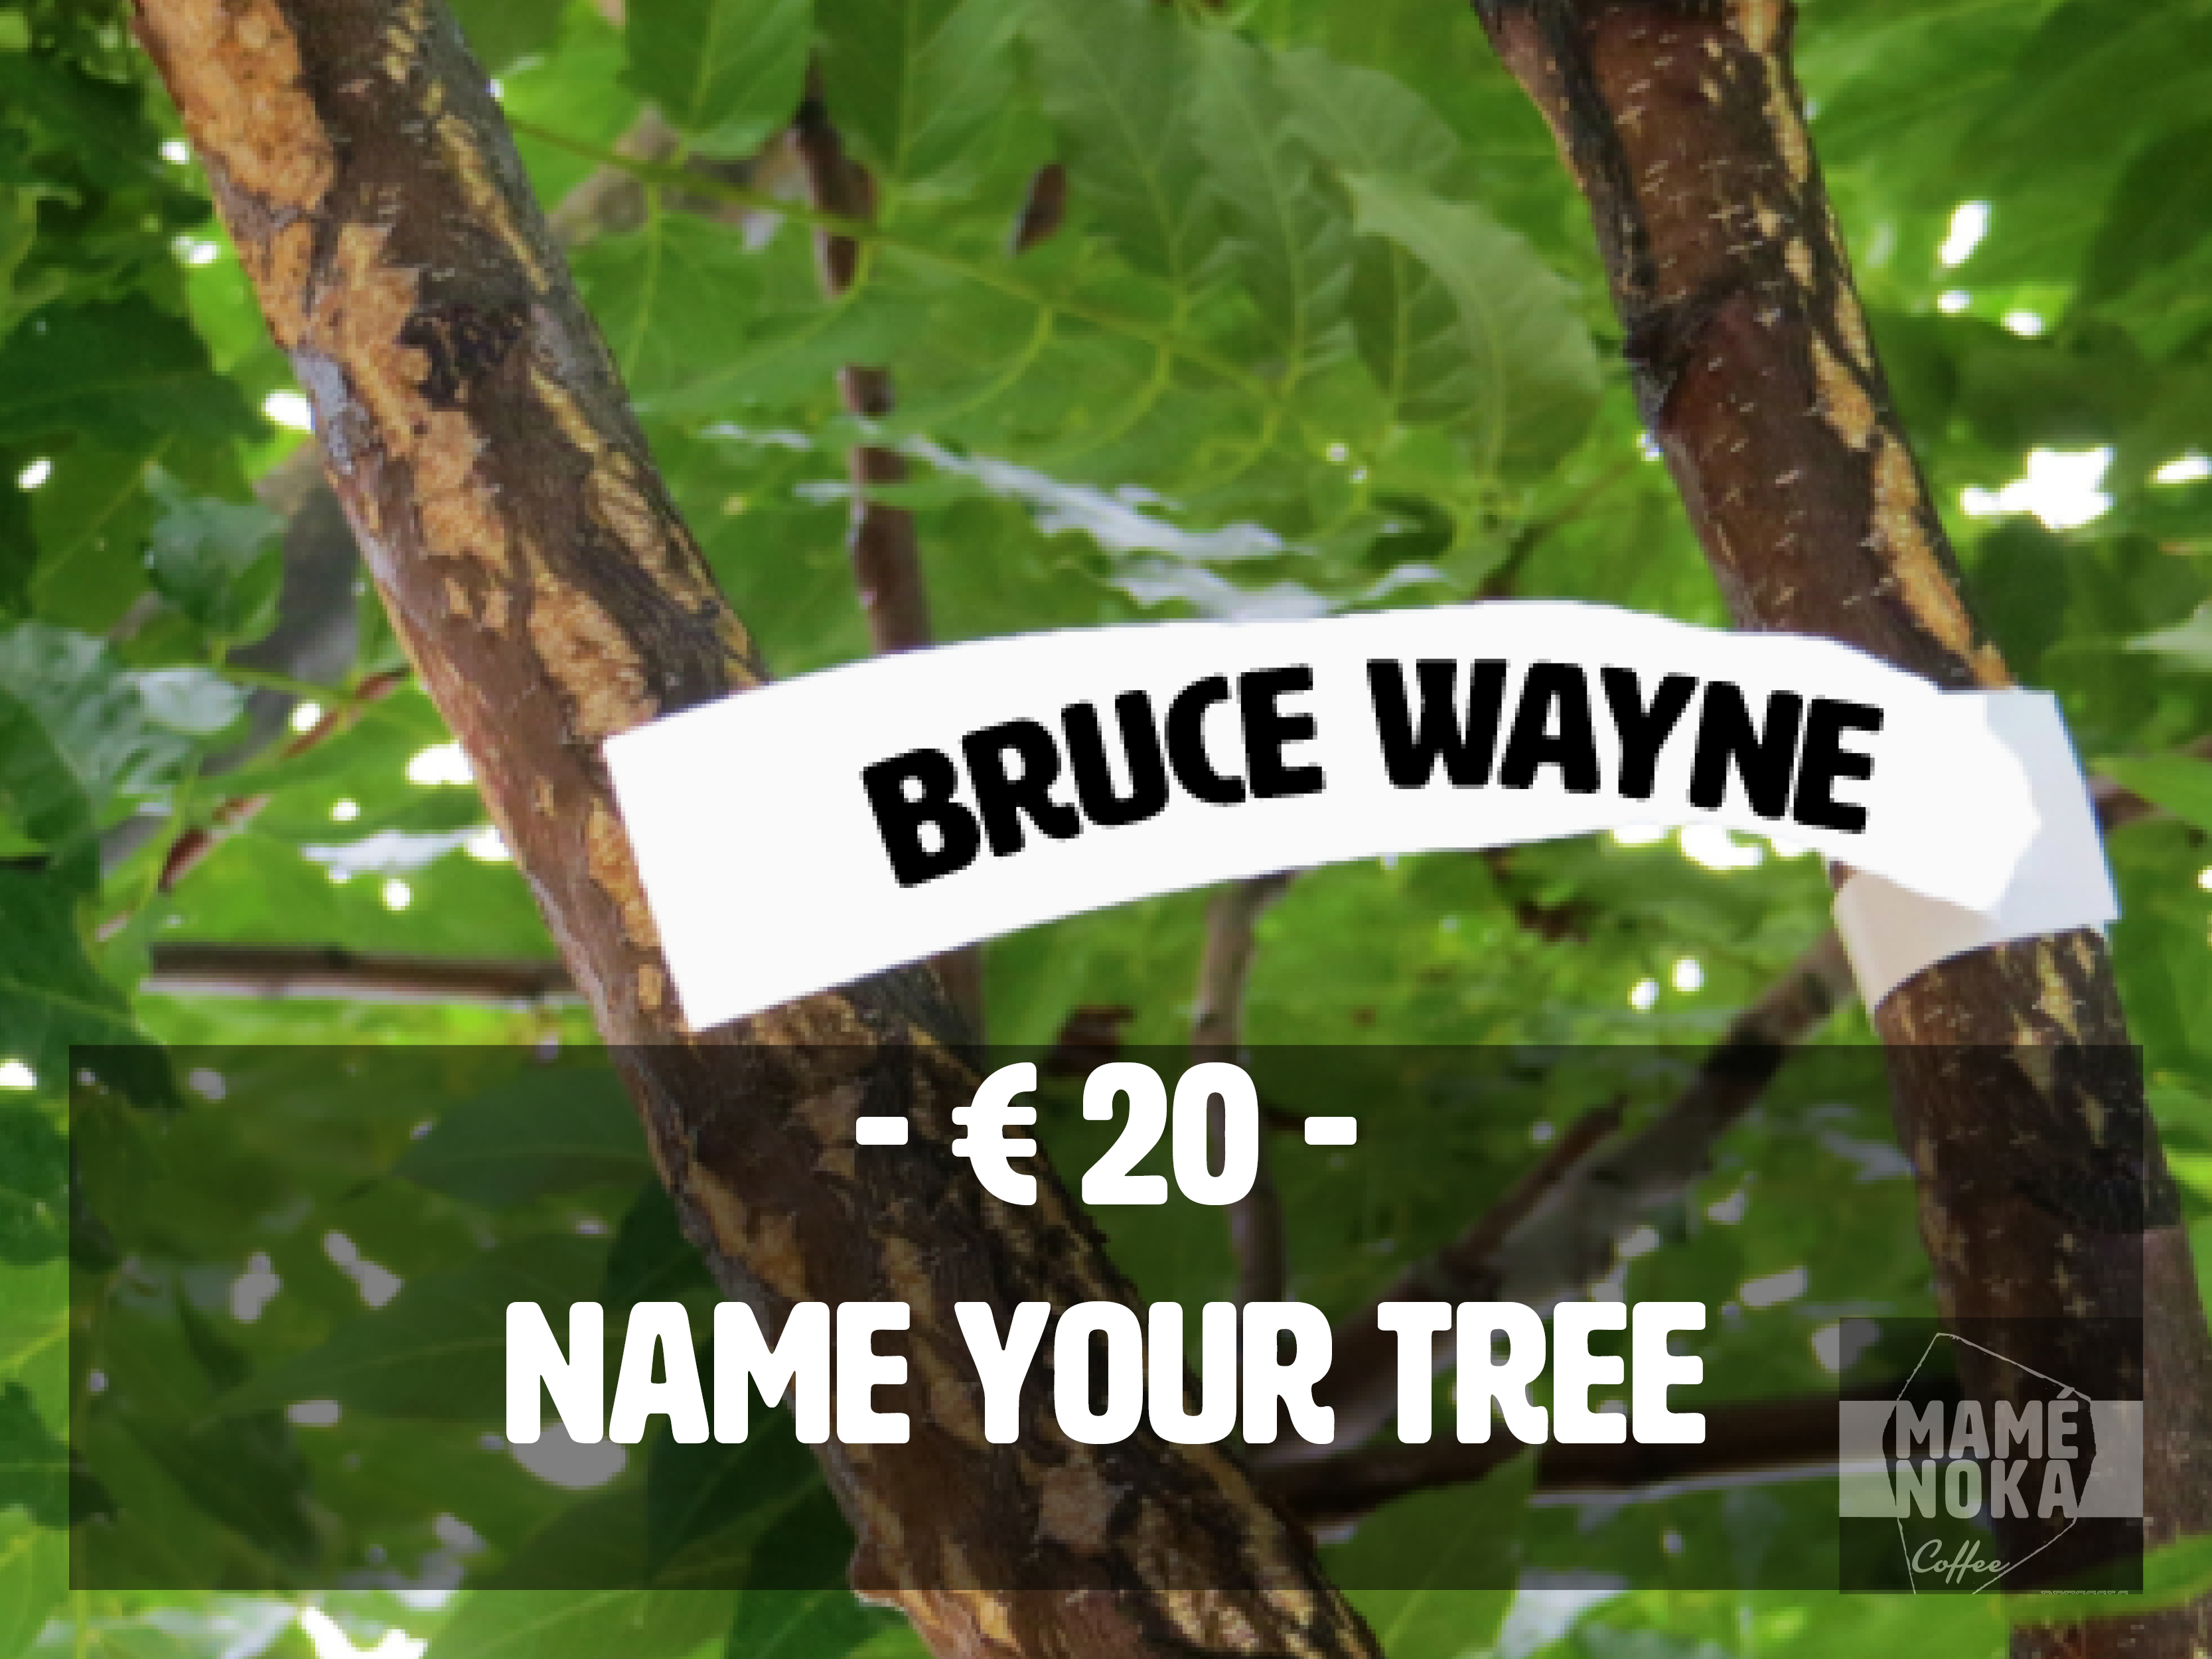 20_-_Name_your_tree-1484579651.jpg